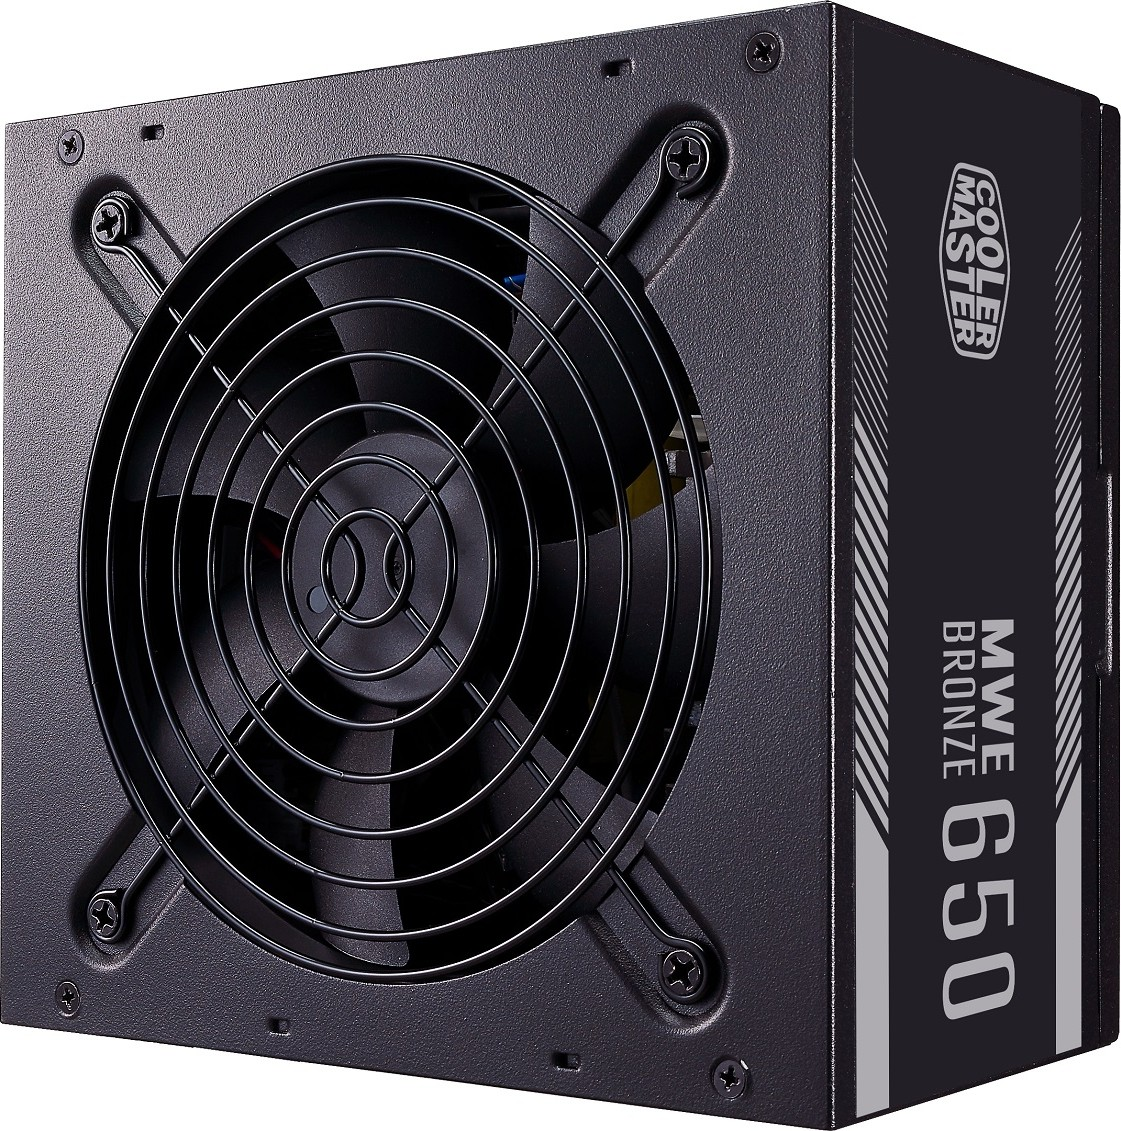 Cooler Master MWE Bronze V2 650W 80 Plus Bronze, DC-to-DC Circuit Design,  120mm HDB Fan, Non Modular ATX Power Supply | MPE-6501-ACAAB